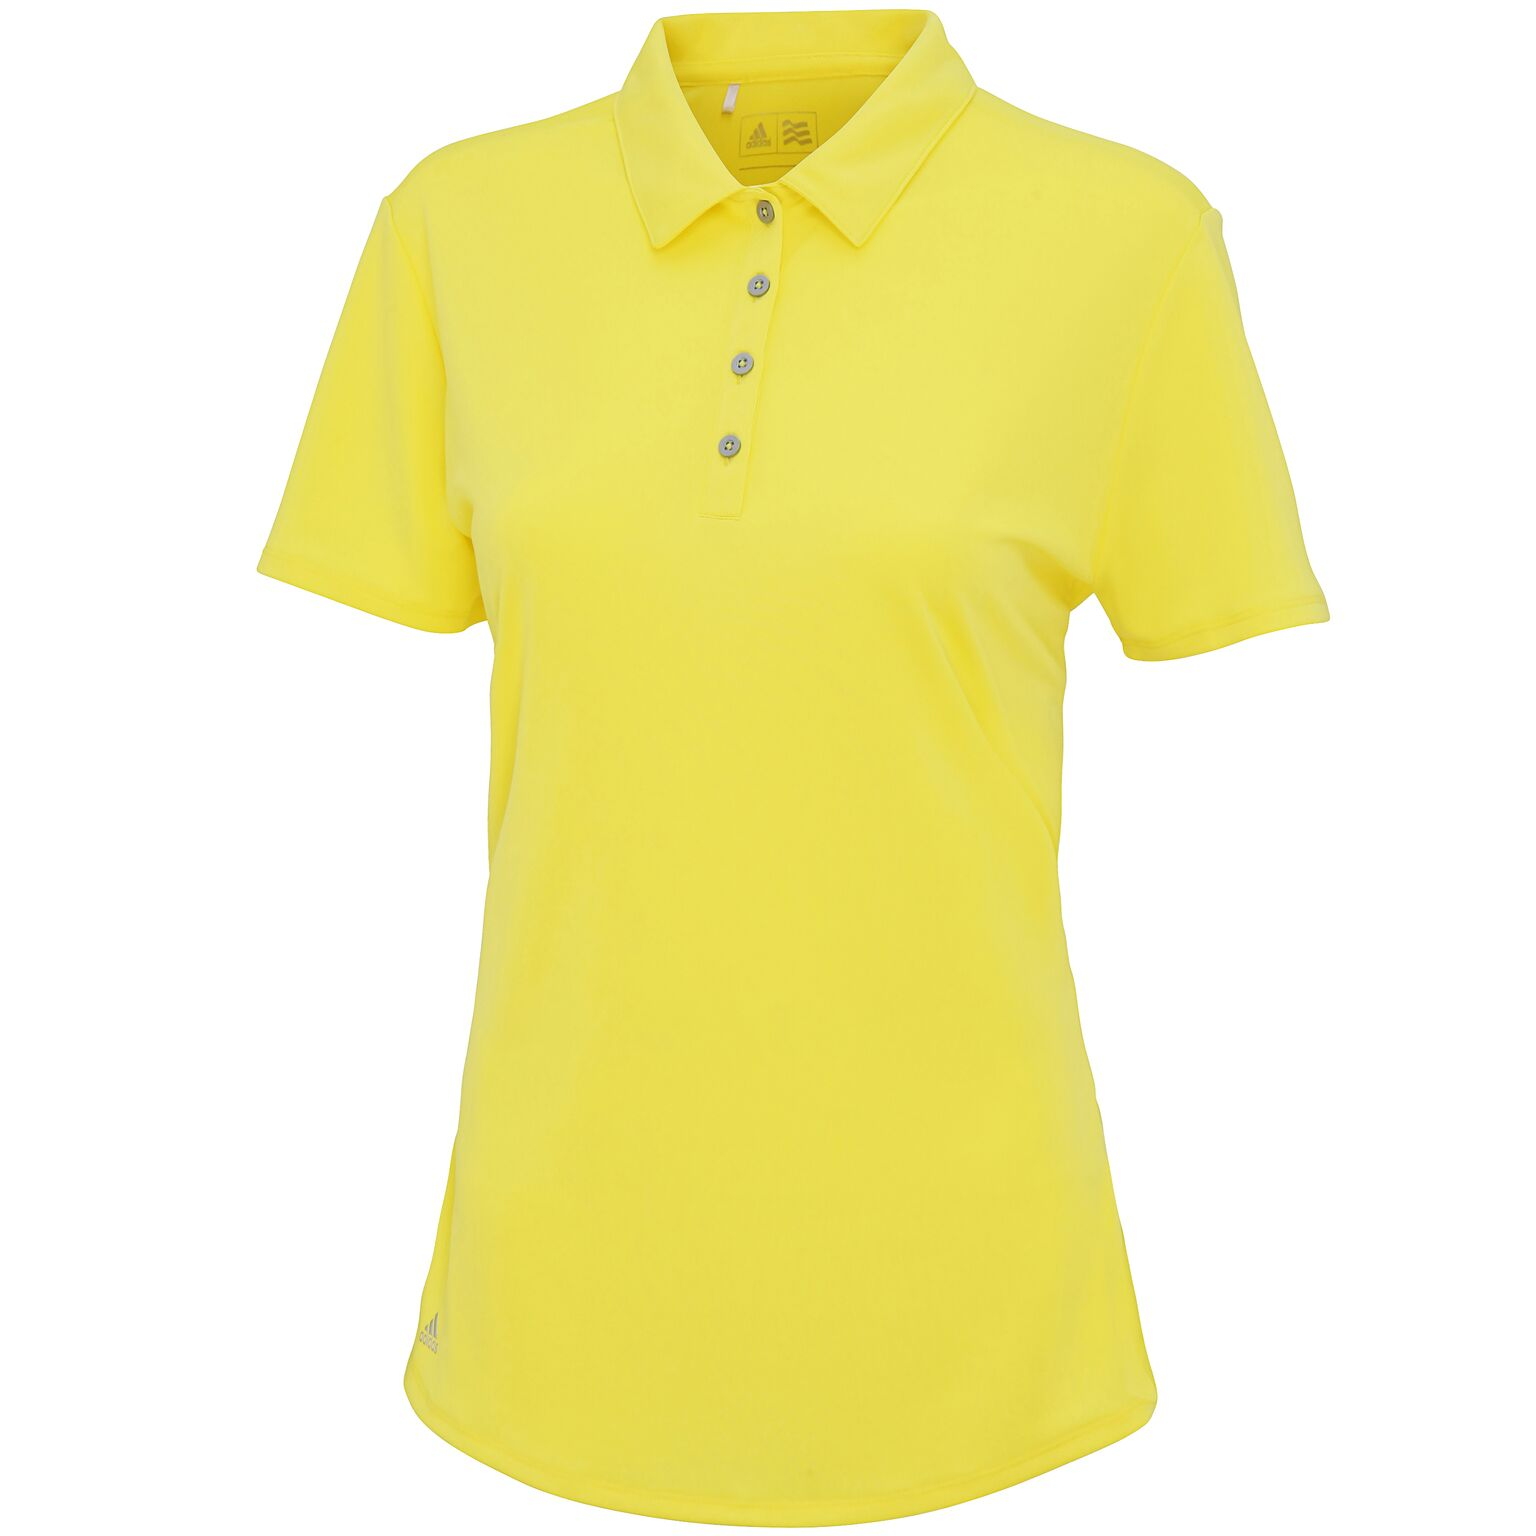 Adidas Women's teamwear polo Yellow